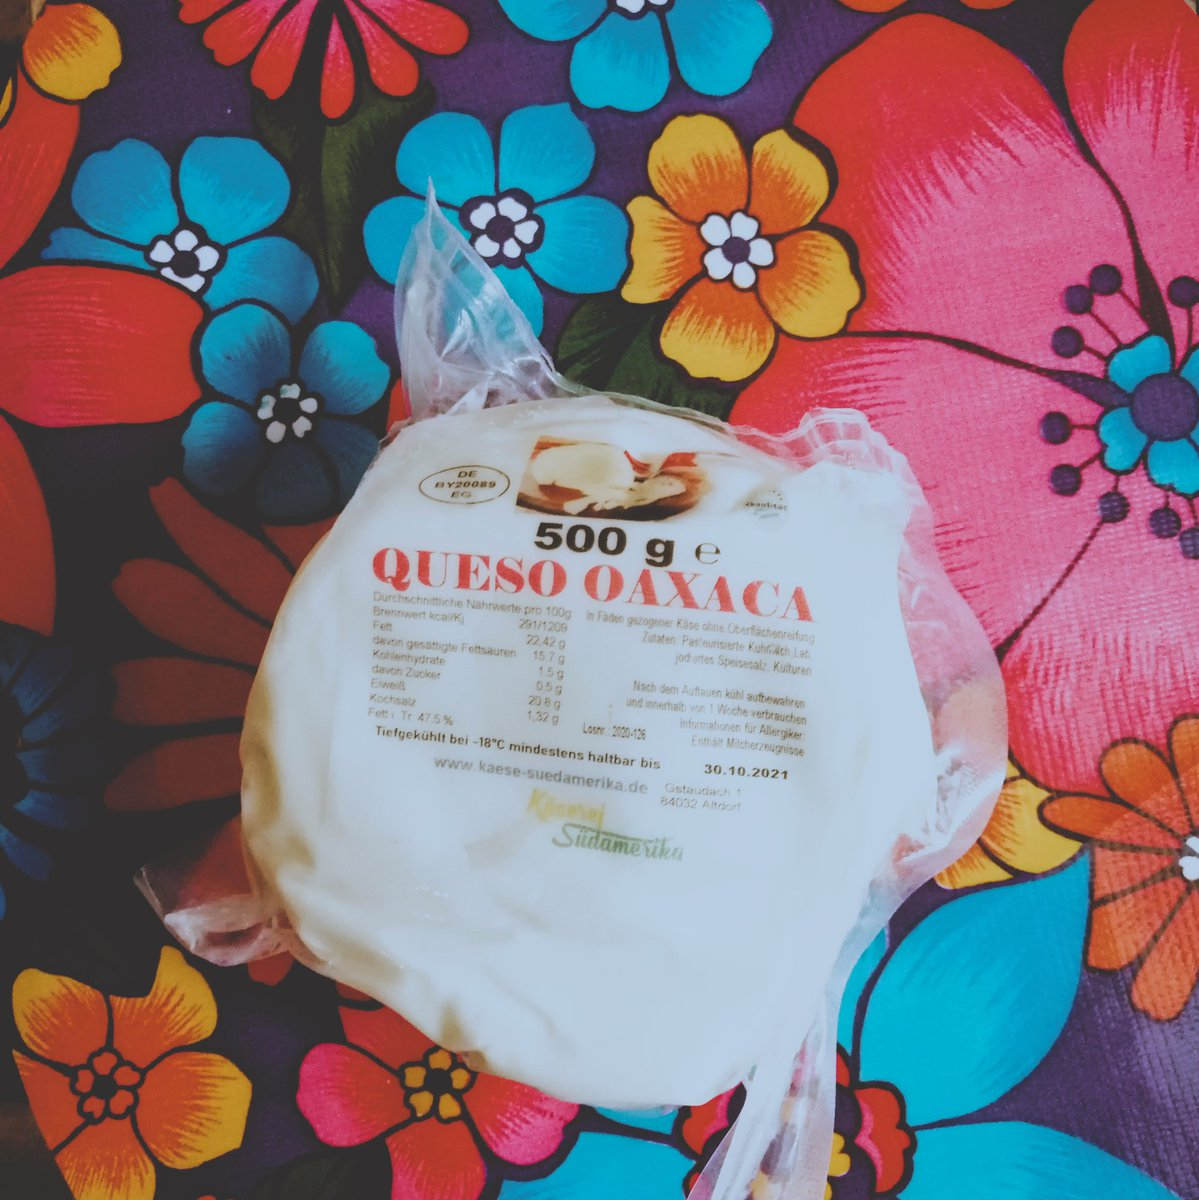 Yes, we are selling Quesillo(Queso Oaxaca) so you can prepare delicious quesadillas at home! • • • #Cheese #Oaxaca #MexicanStore #MexicanFood #Mexikanisch #FoodInBerlin #Quesillo #InBerlin #MexicoBerlin #mexicanosenberlin #tasty #MezcalDelBueno #OaxacaPower #Quesadilla https://t.co/MkPavt8kGa